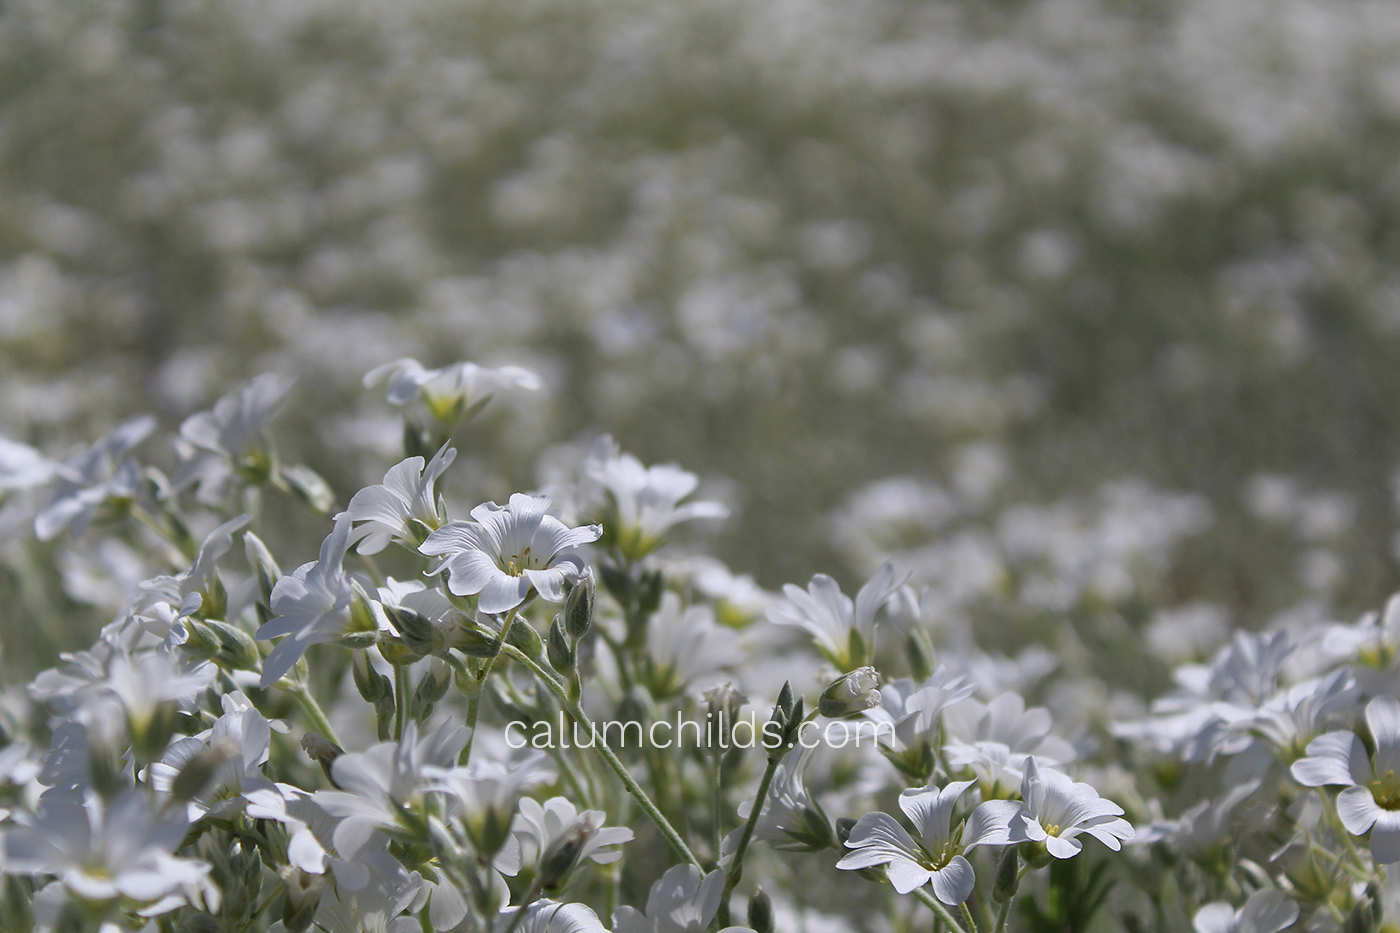 An area of grass which is covered in Cerastium tomentosum.